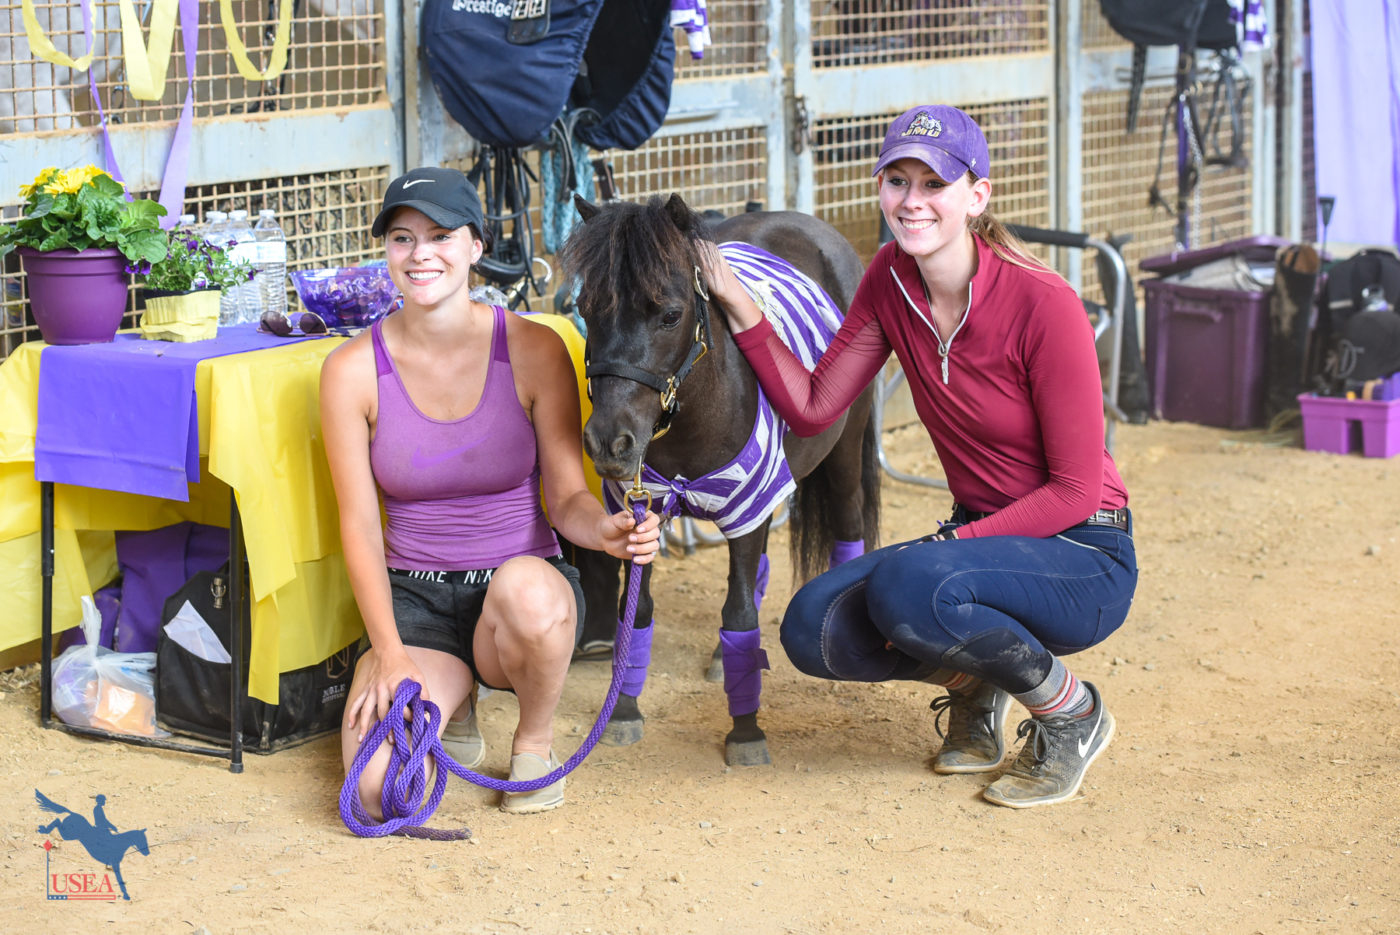 Members of the James Madison University Eventing Team and their mascot, Rory the Miniature Horse. USEA/Jessica Duffy Photo.